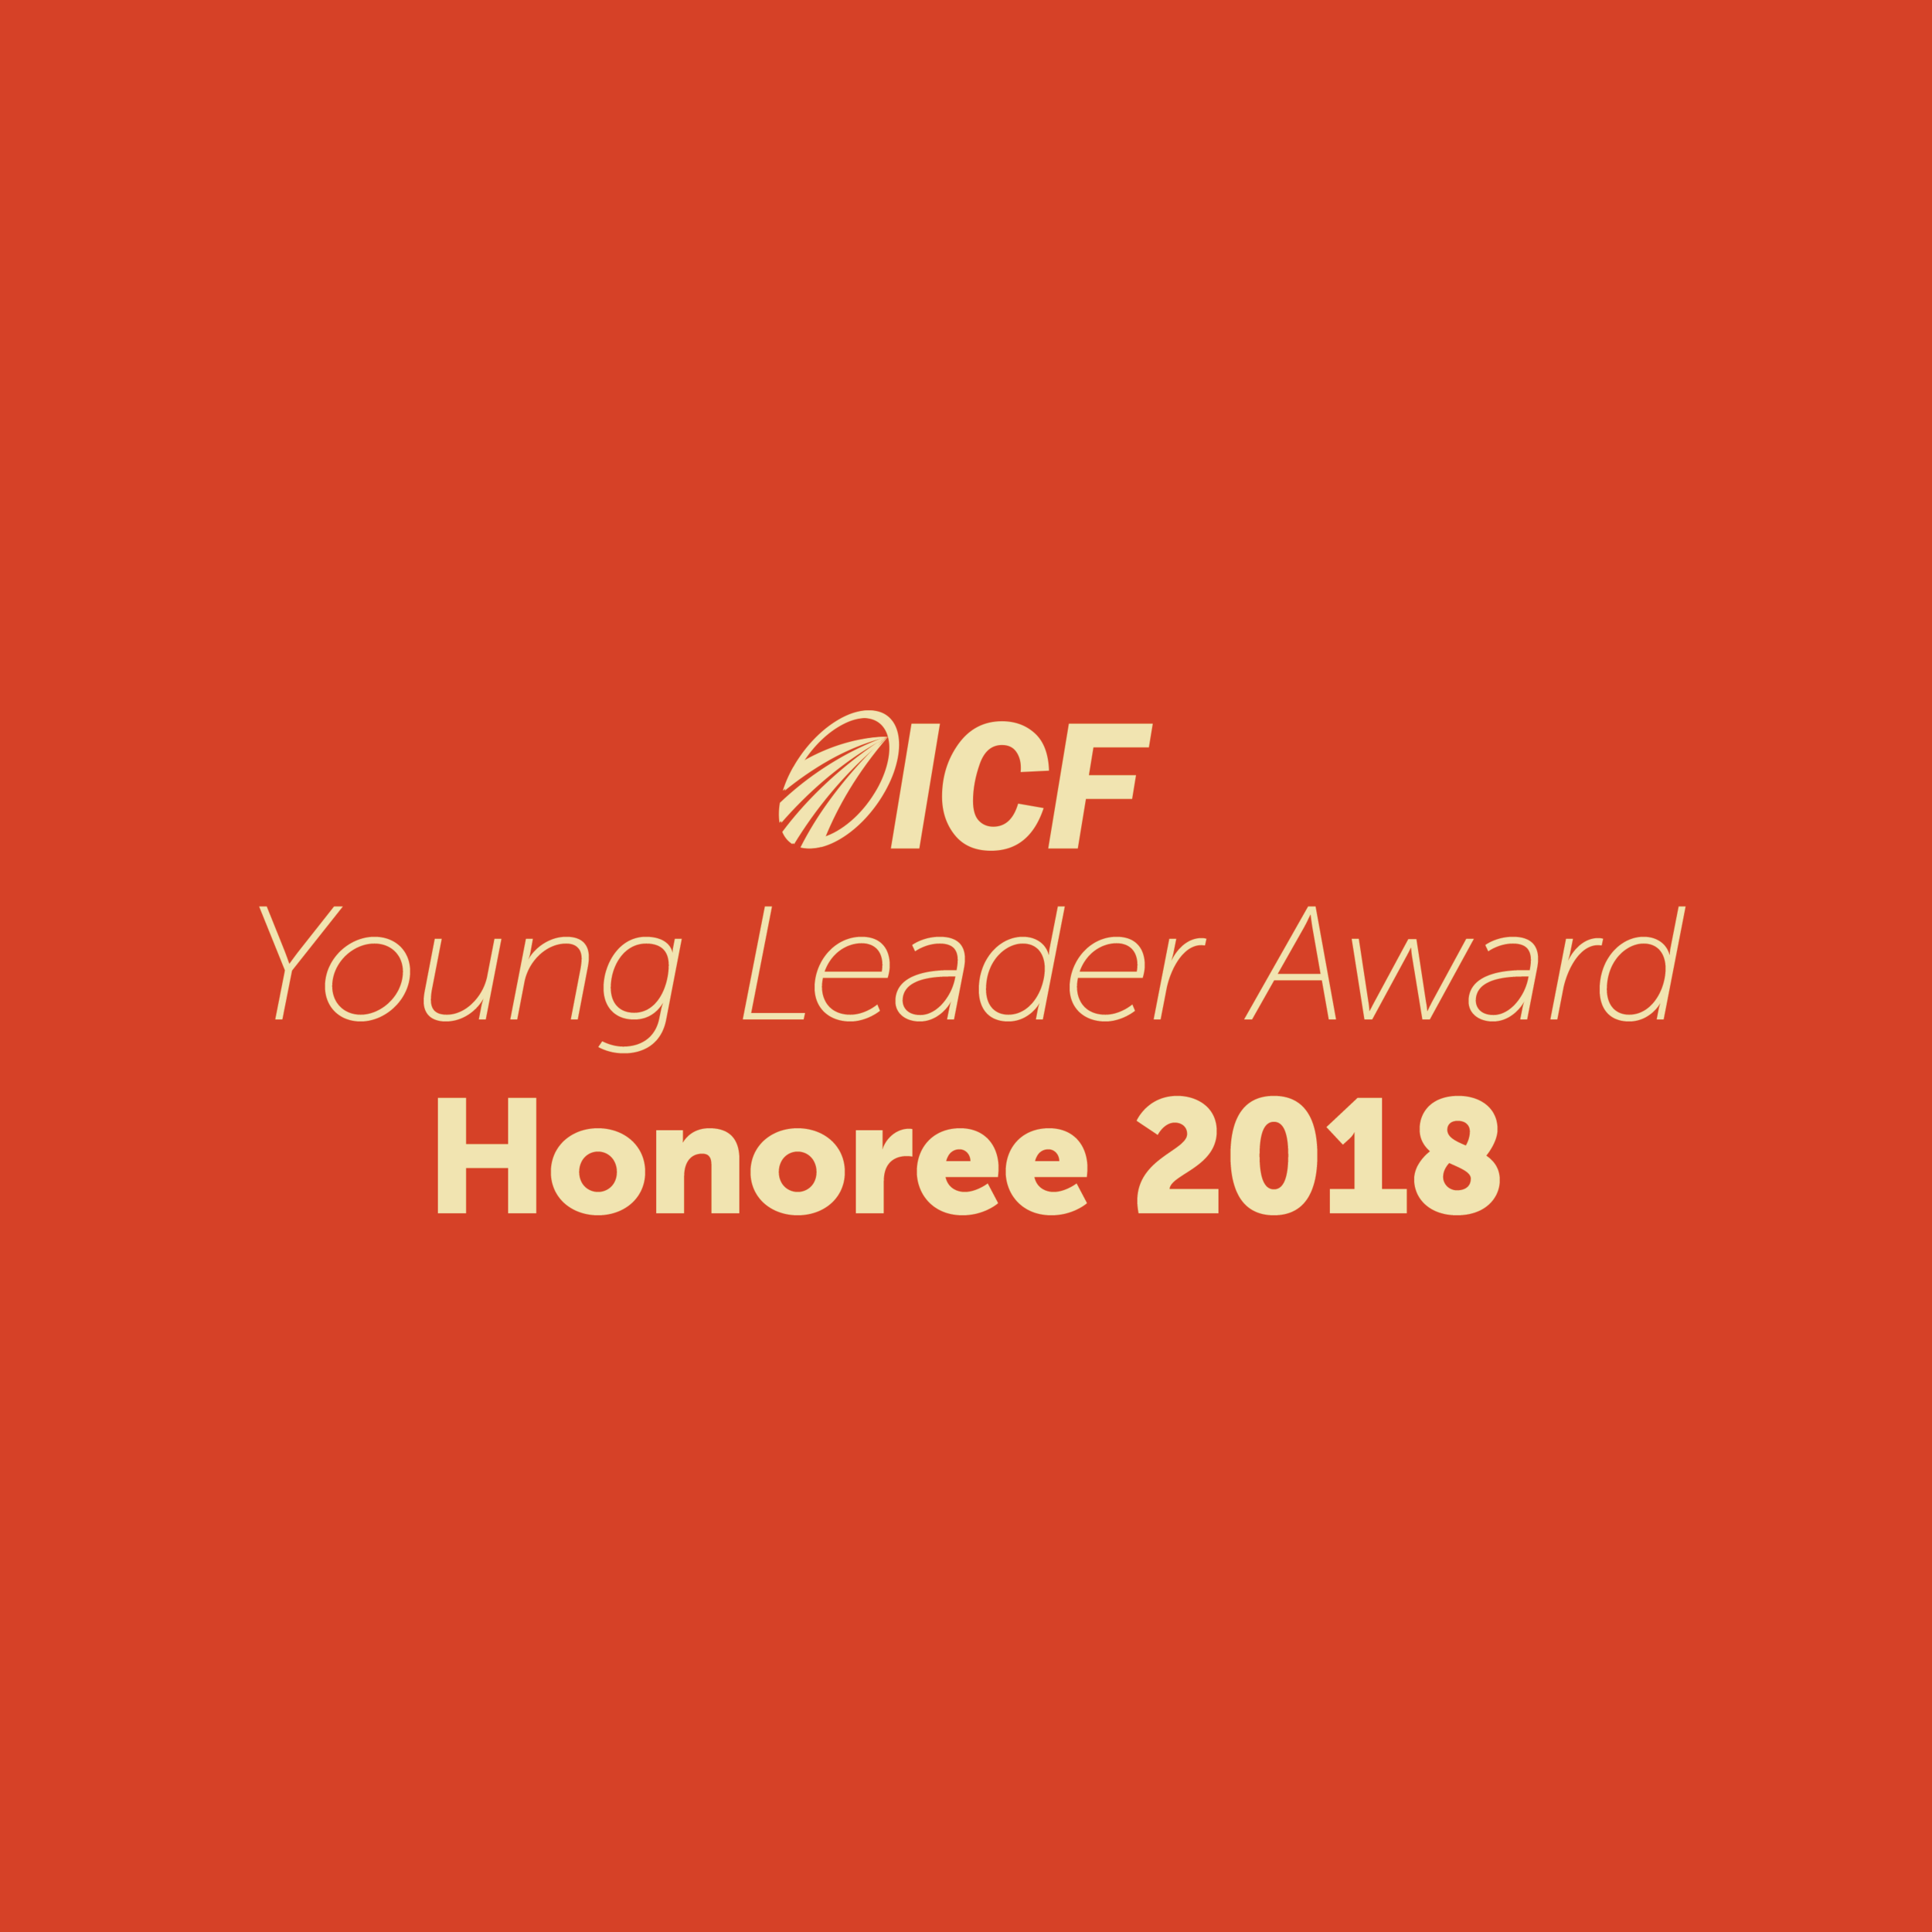 I was been chosen as one of the first Young Coach Leaders out of ICF's 33,000 global members. I was the only North American coach who received the honor, which is awarded to coaches under 40 years old.